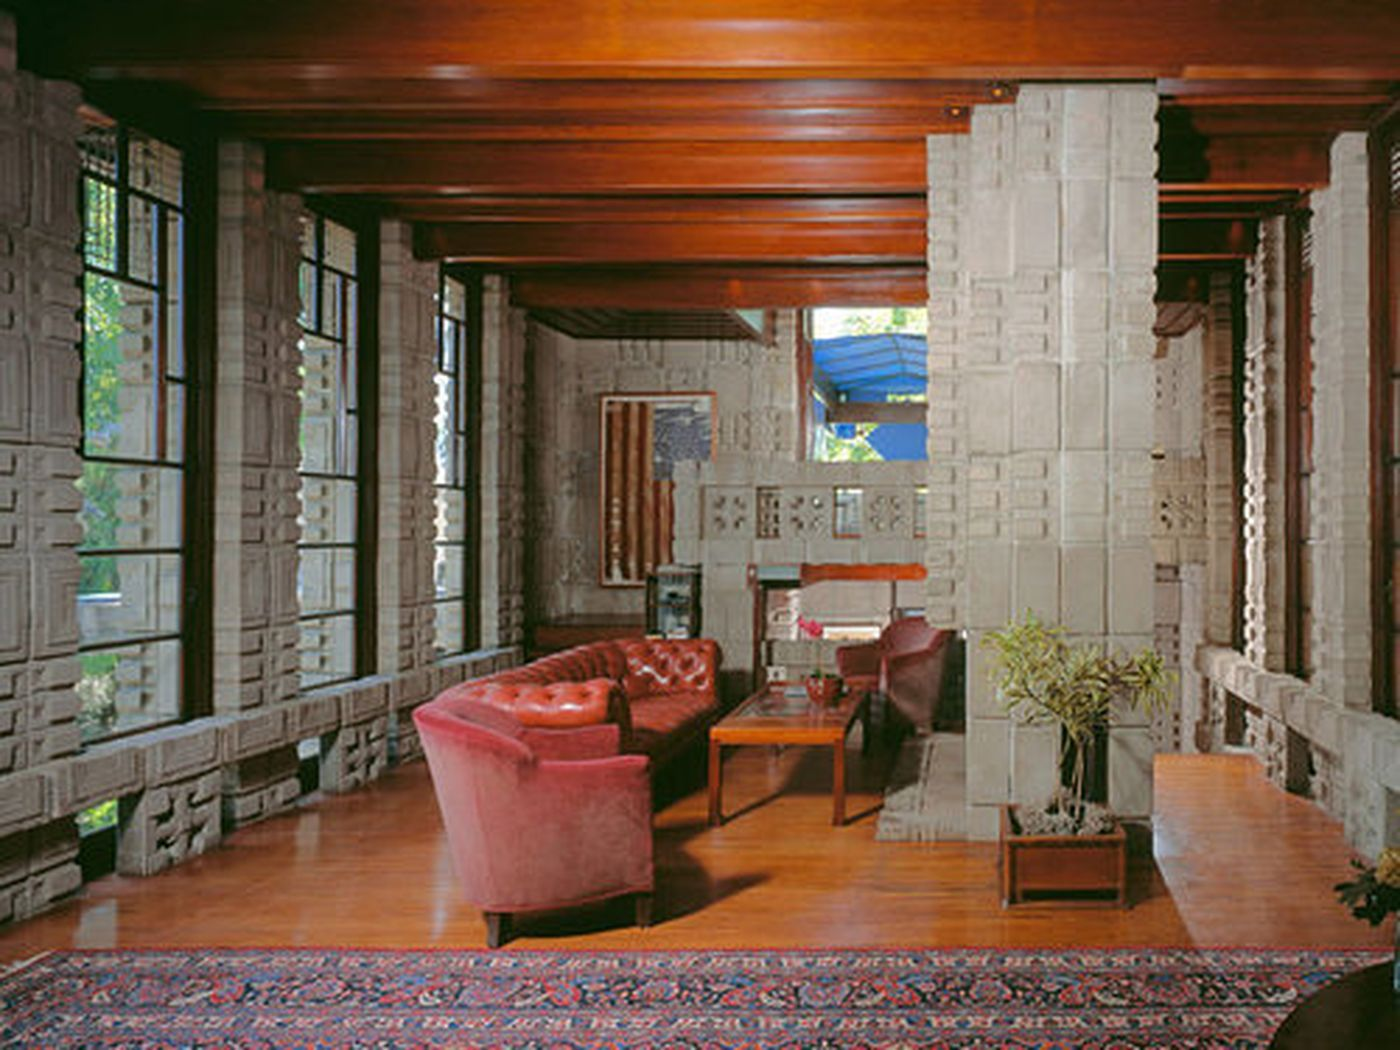 Frank Lloyd Wright Storer House Sets Sales Record in the Hills - Curbed LA